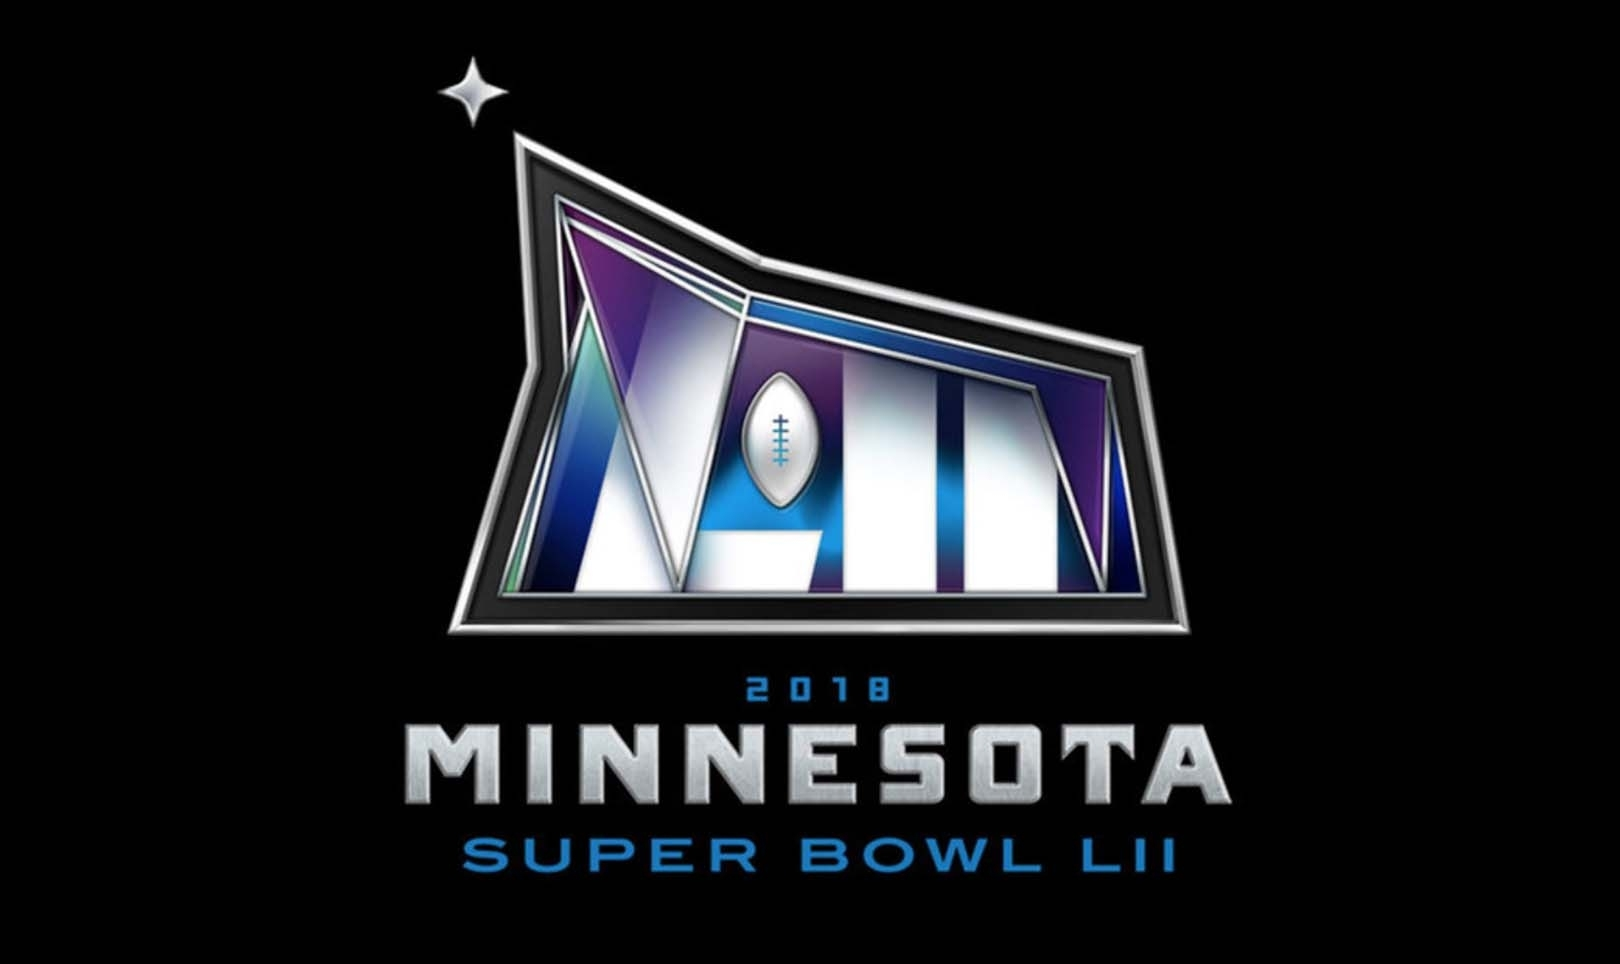 2018 Super Bowl Tickets, Hotels, And Merchandise Fraud throughout Super Bowl Tickets 2018